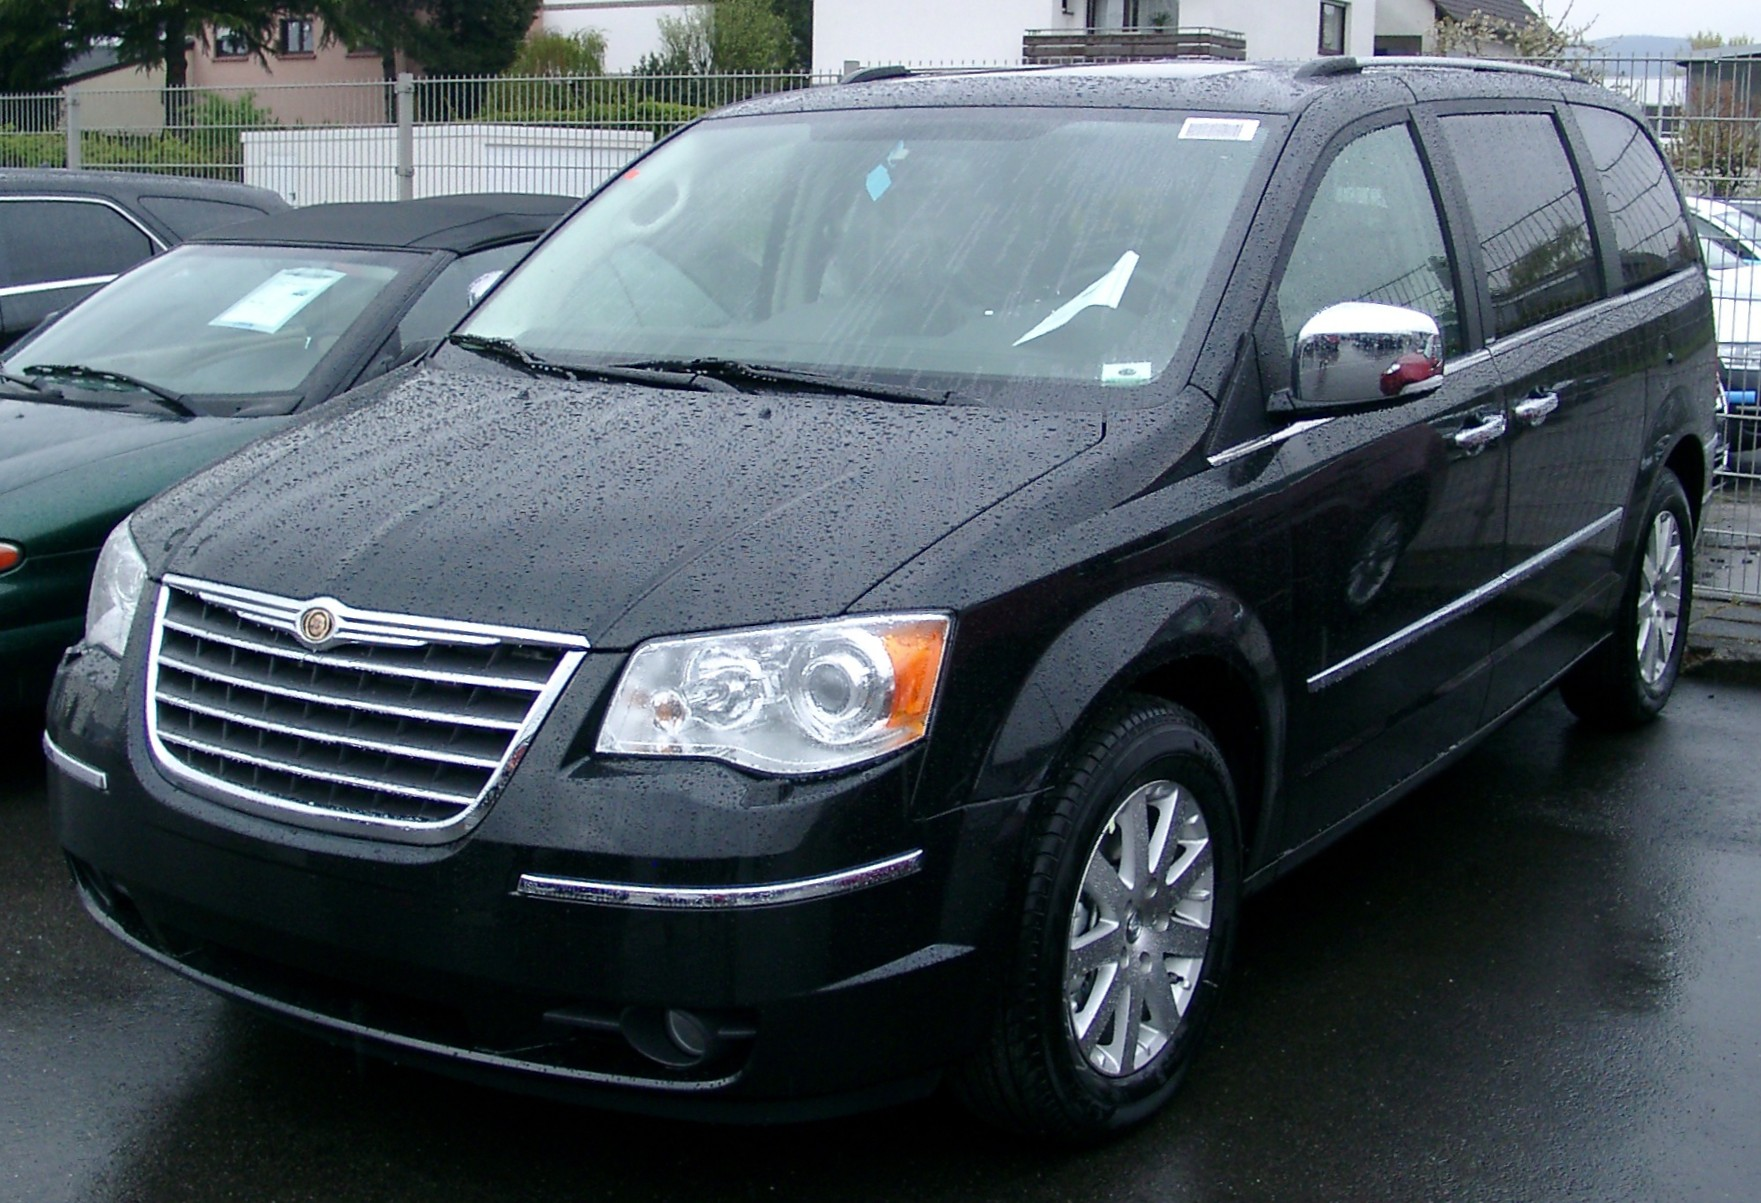 chrysler voyager wikipedia. Black Bedroom Furniture Sets. Home Design Ideas